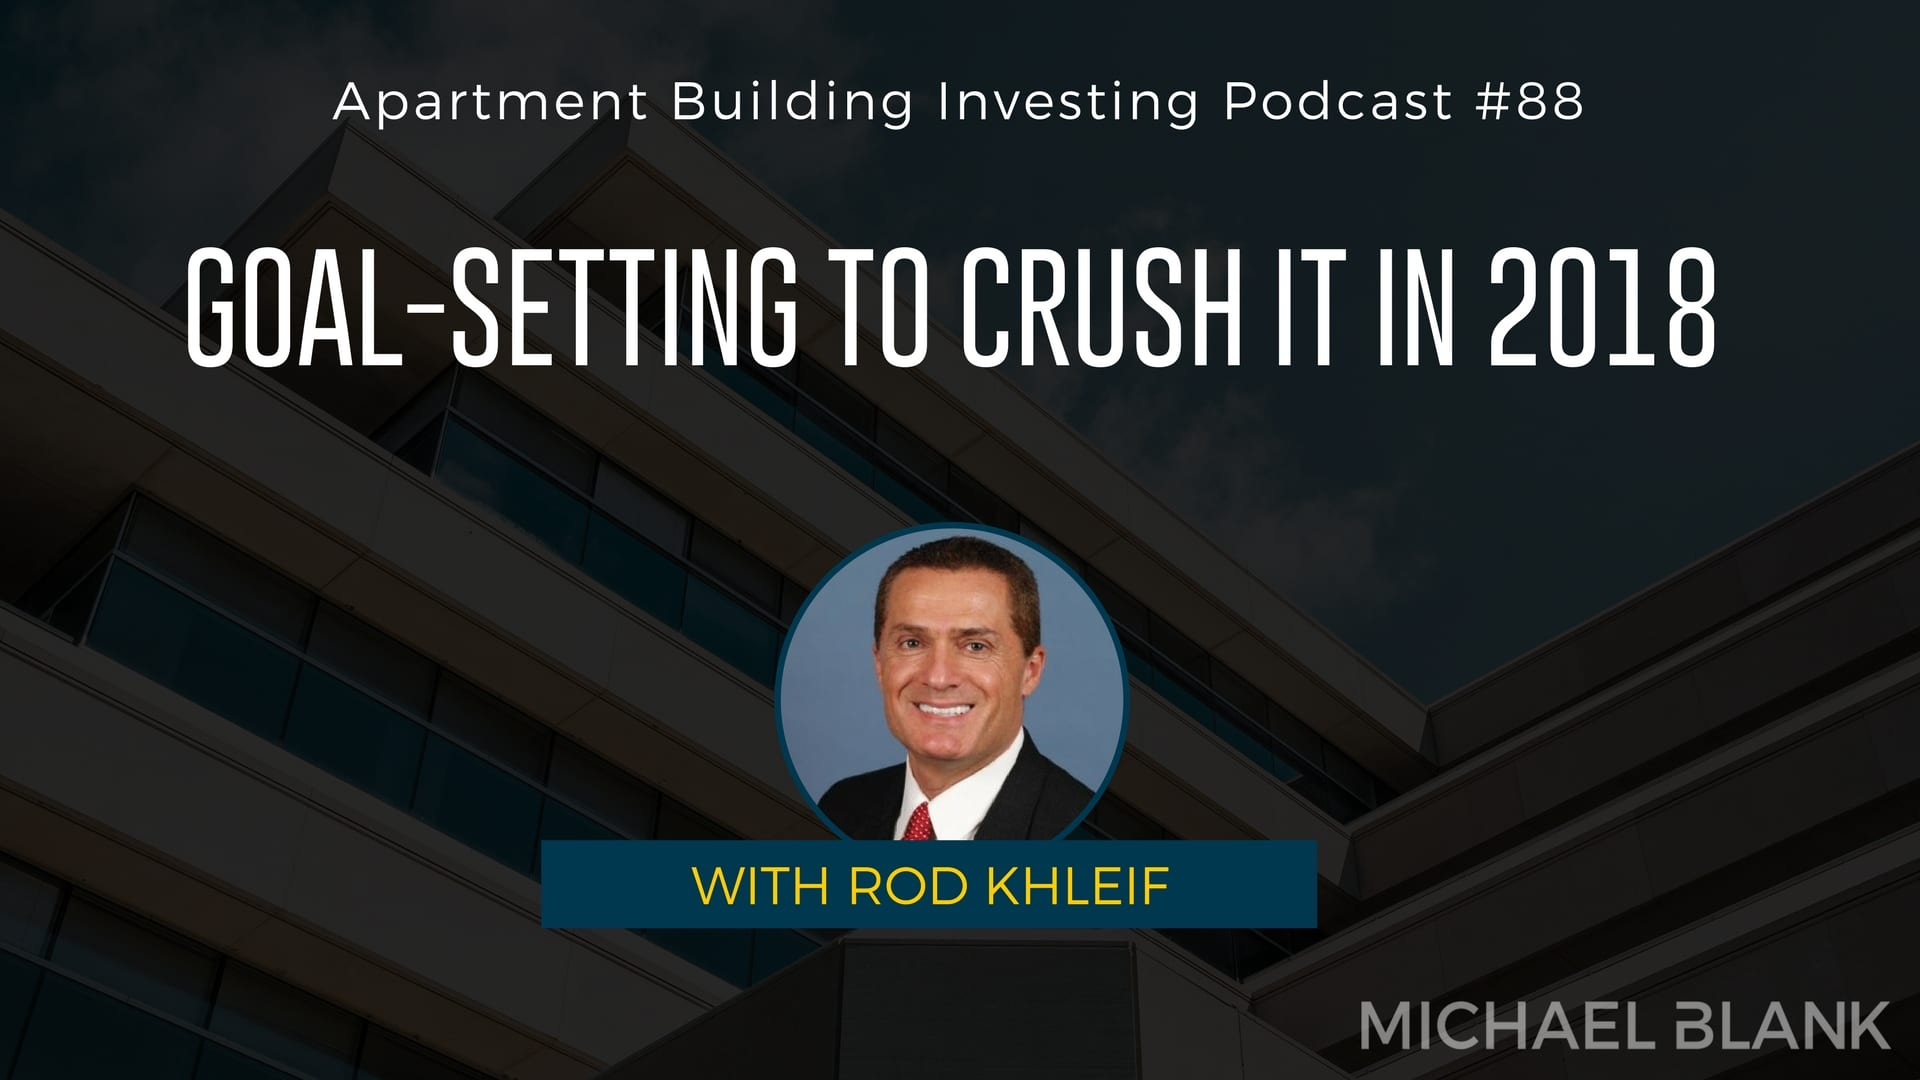 MB 088: Goal-Setting to Crush It in 2018 – With Rod Khleif